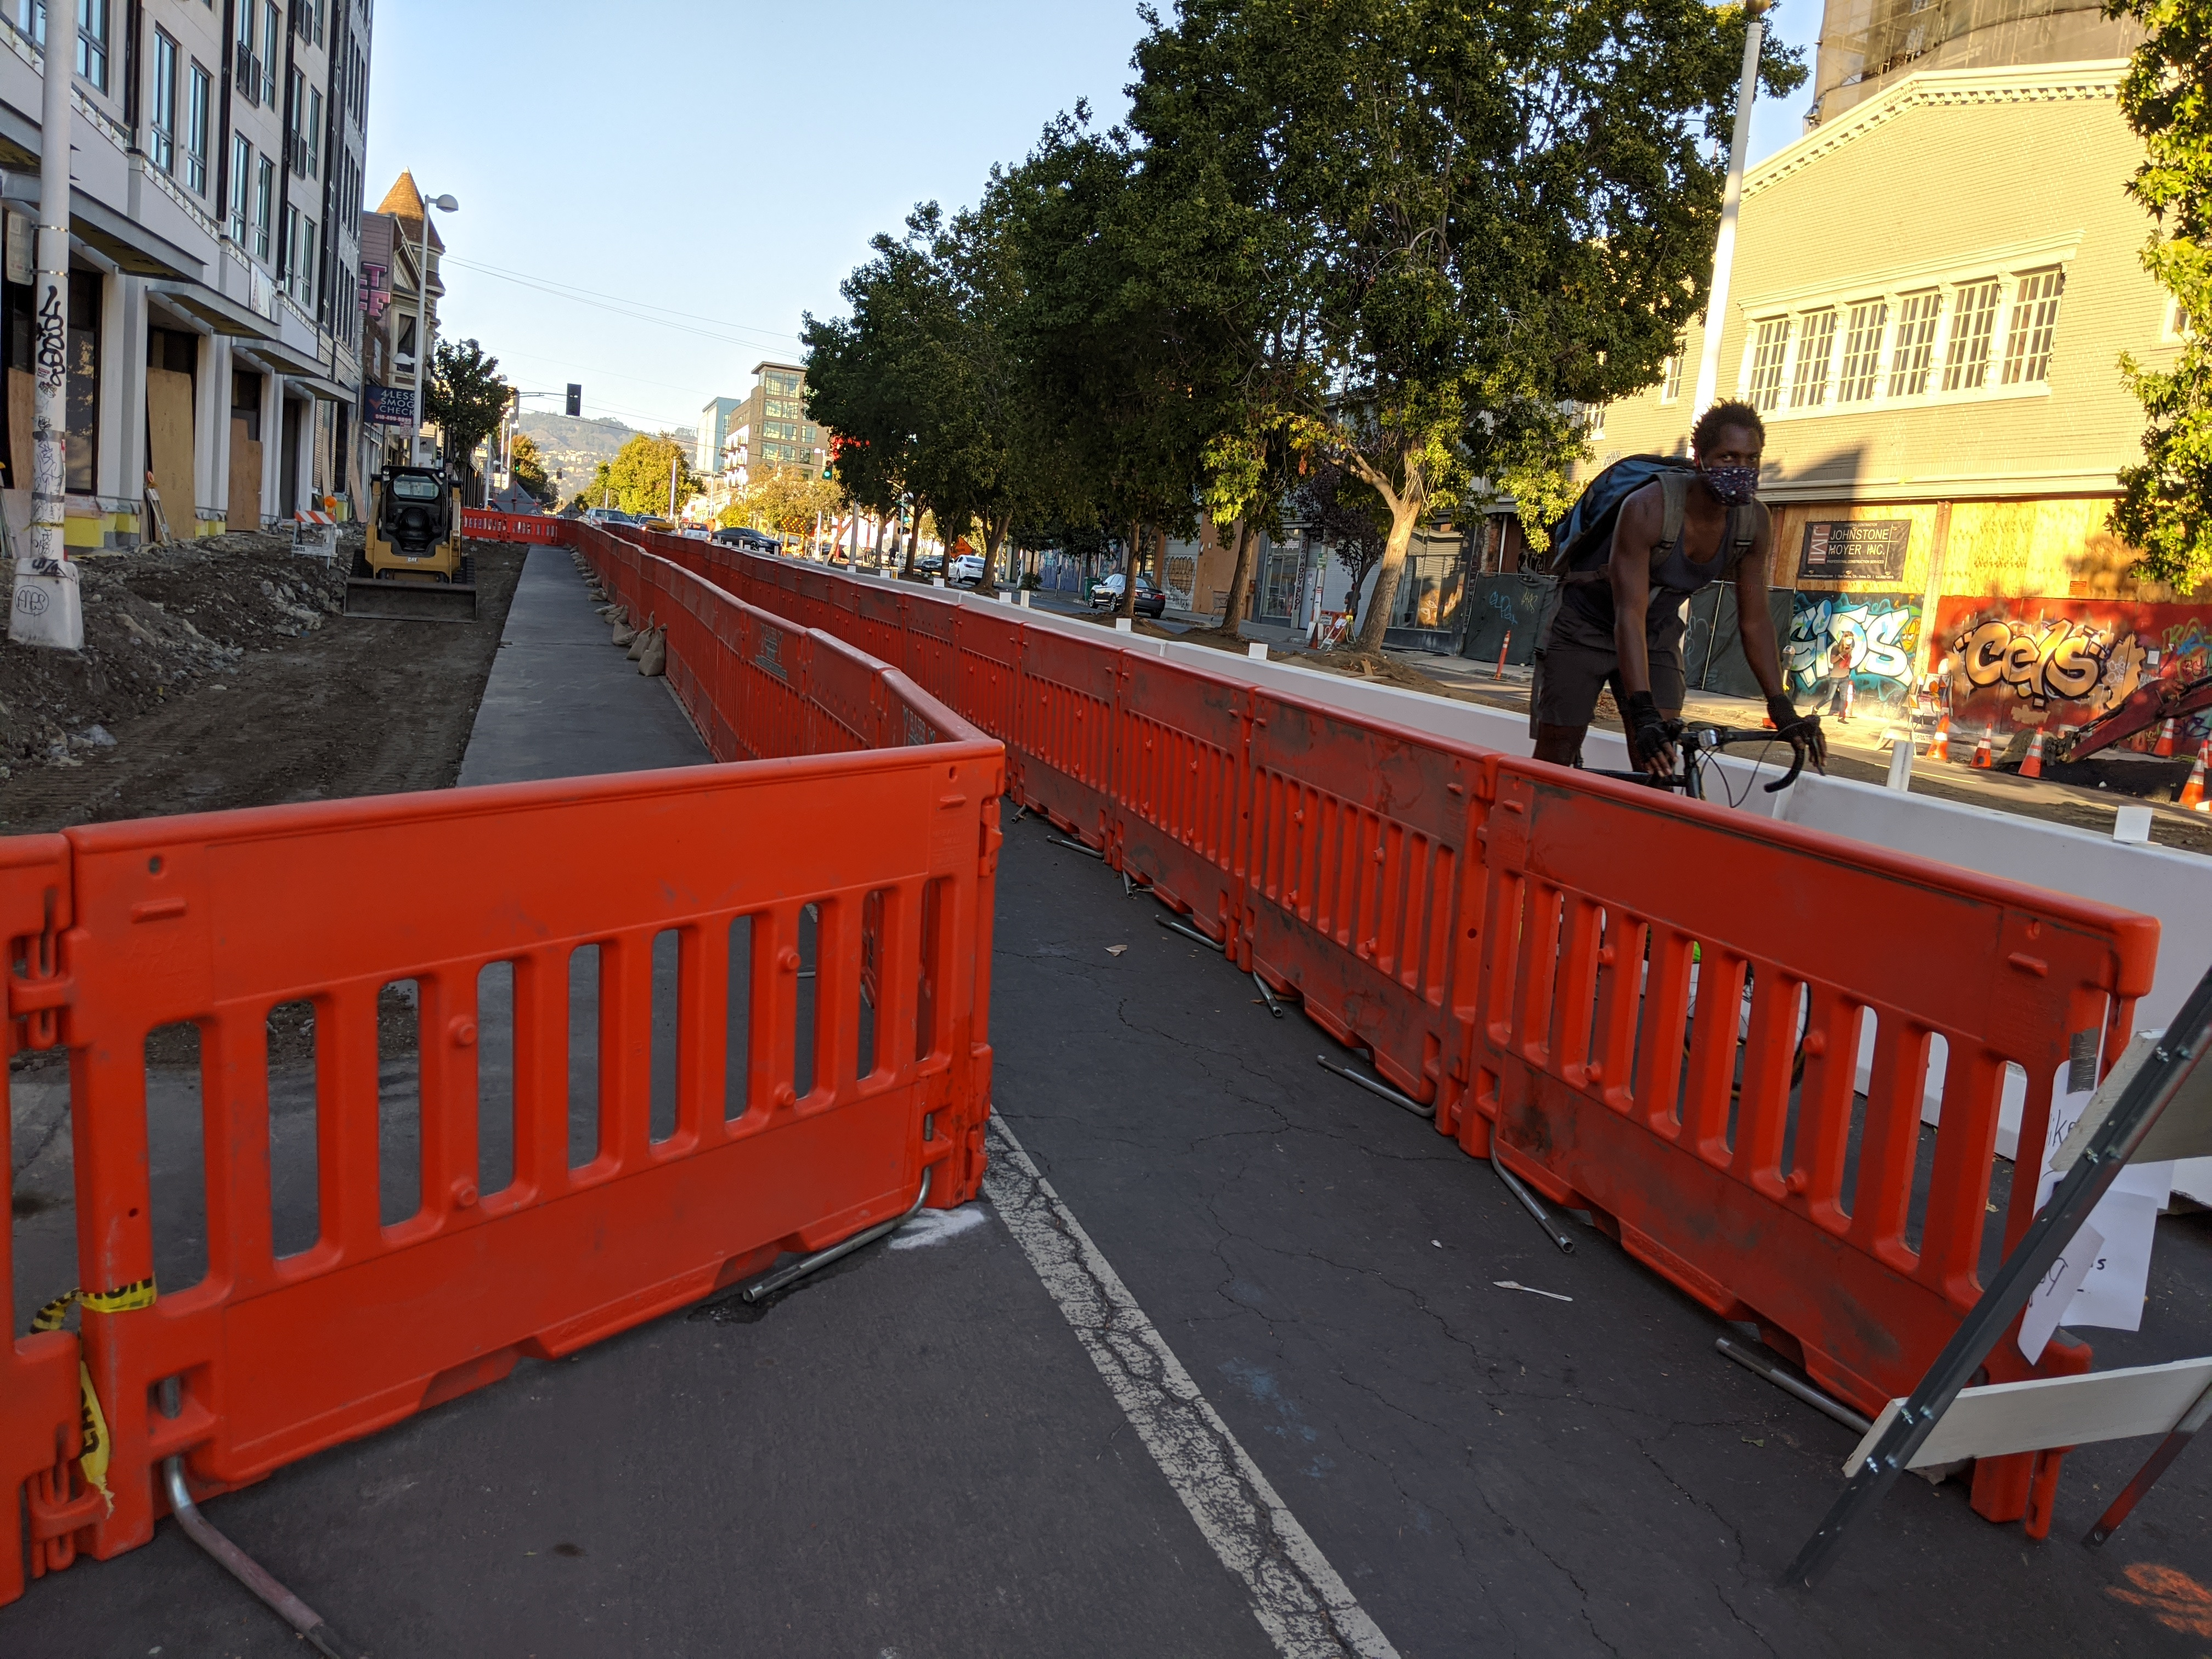 With this configuration, cyclists and pedestrians know exactly where they need to be. And both are protected by an robust barrier from incursions by motorists